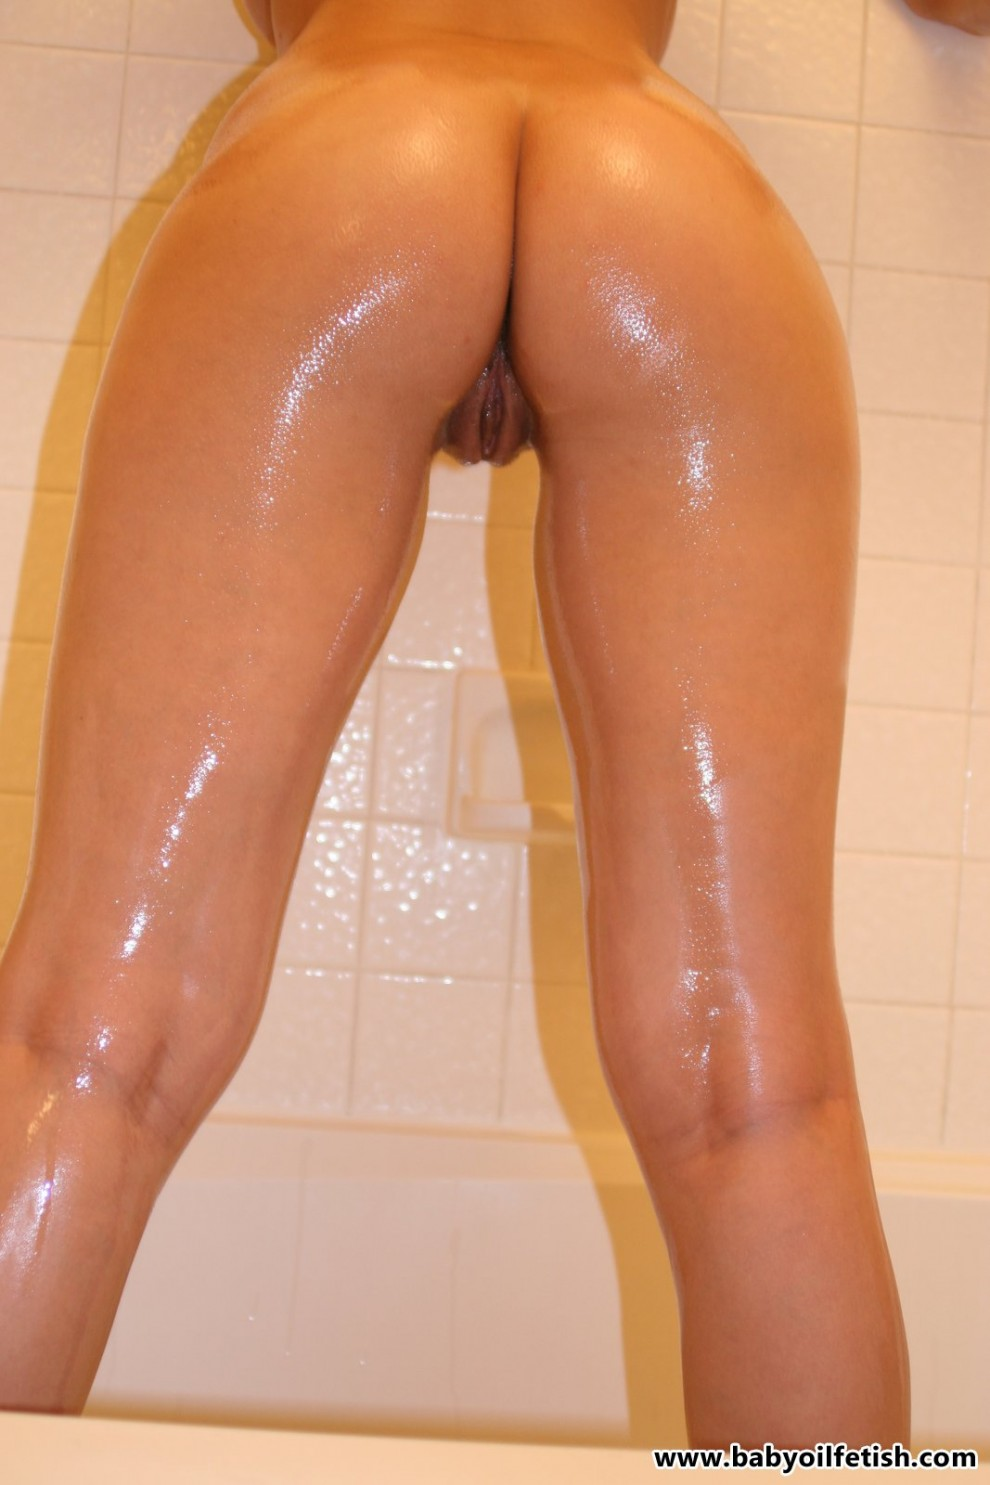 Arika covered in oil